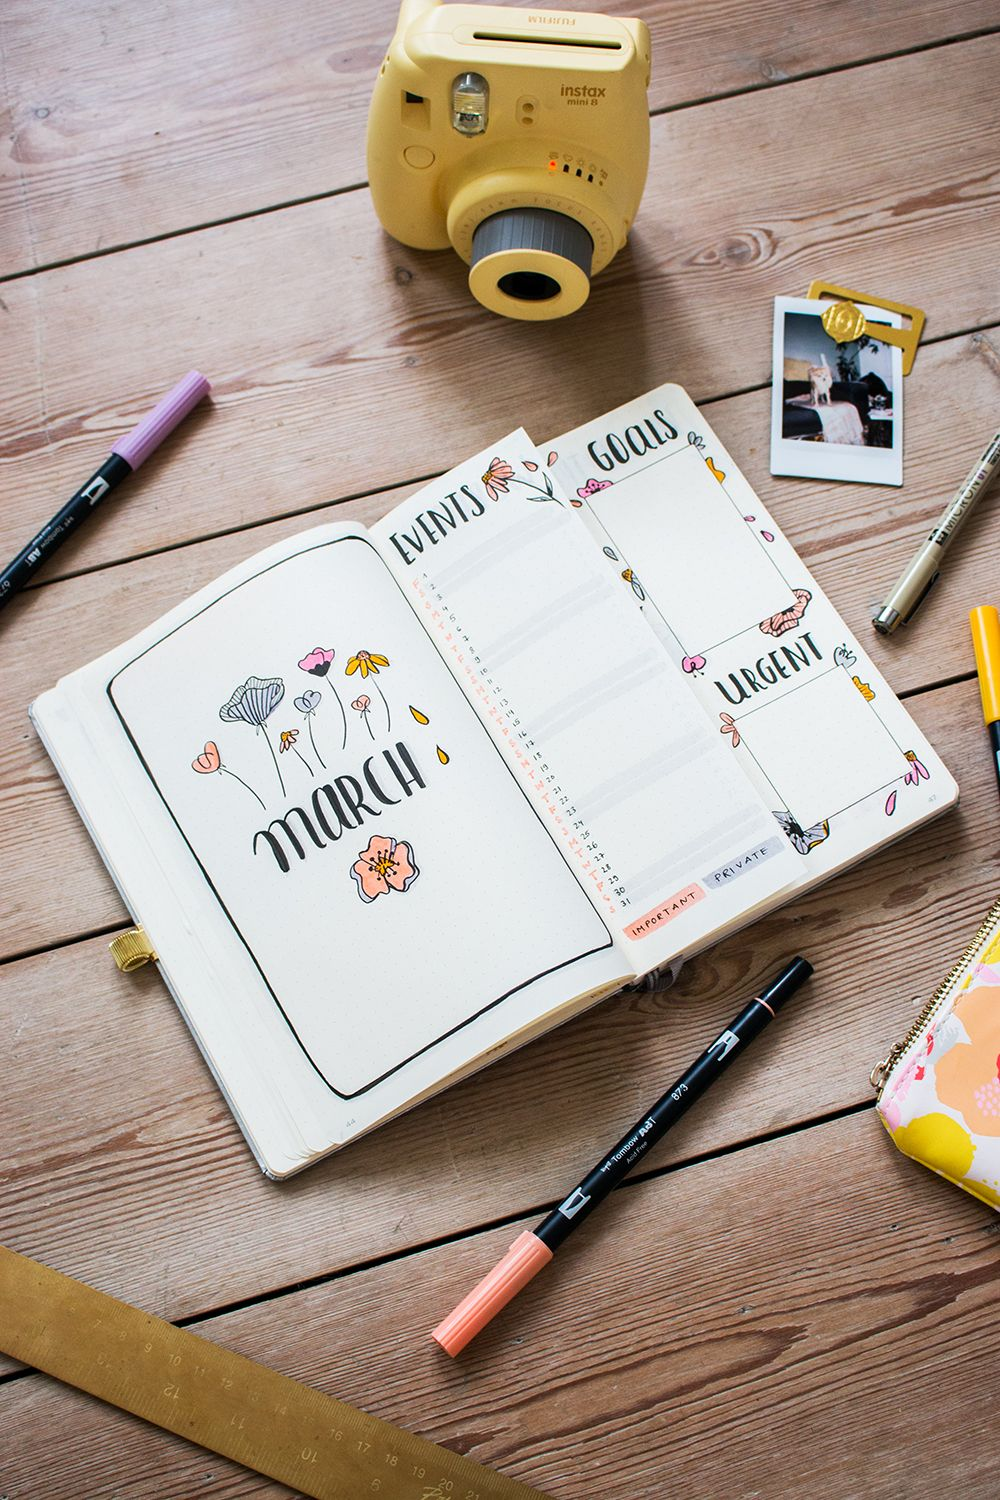 Plan with me: Bullet Journal Setup March 2019 - tea & twigs